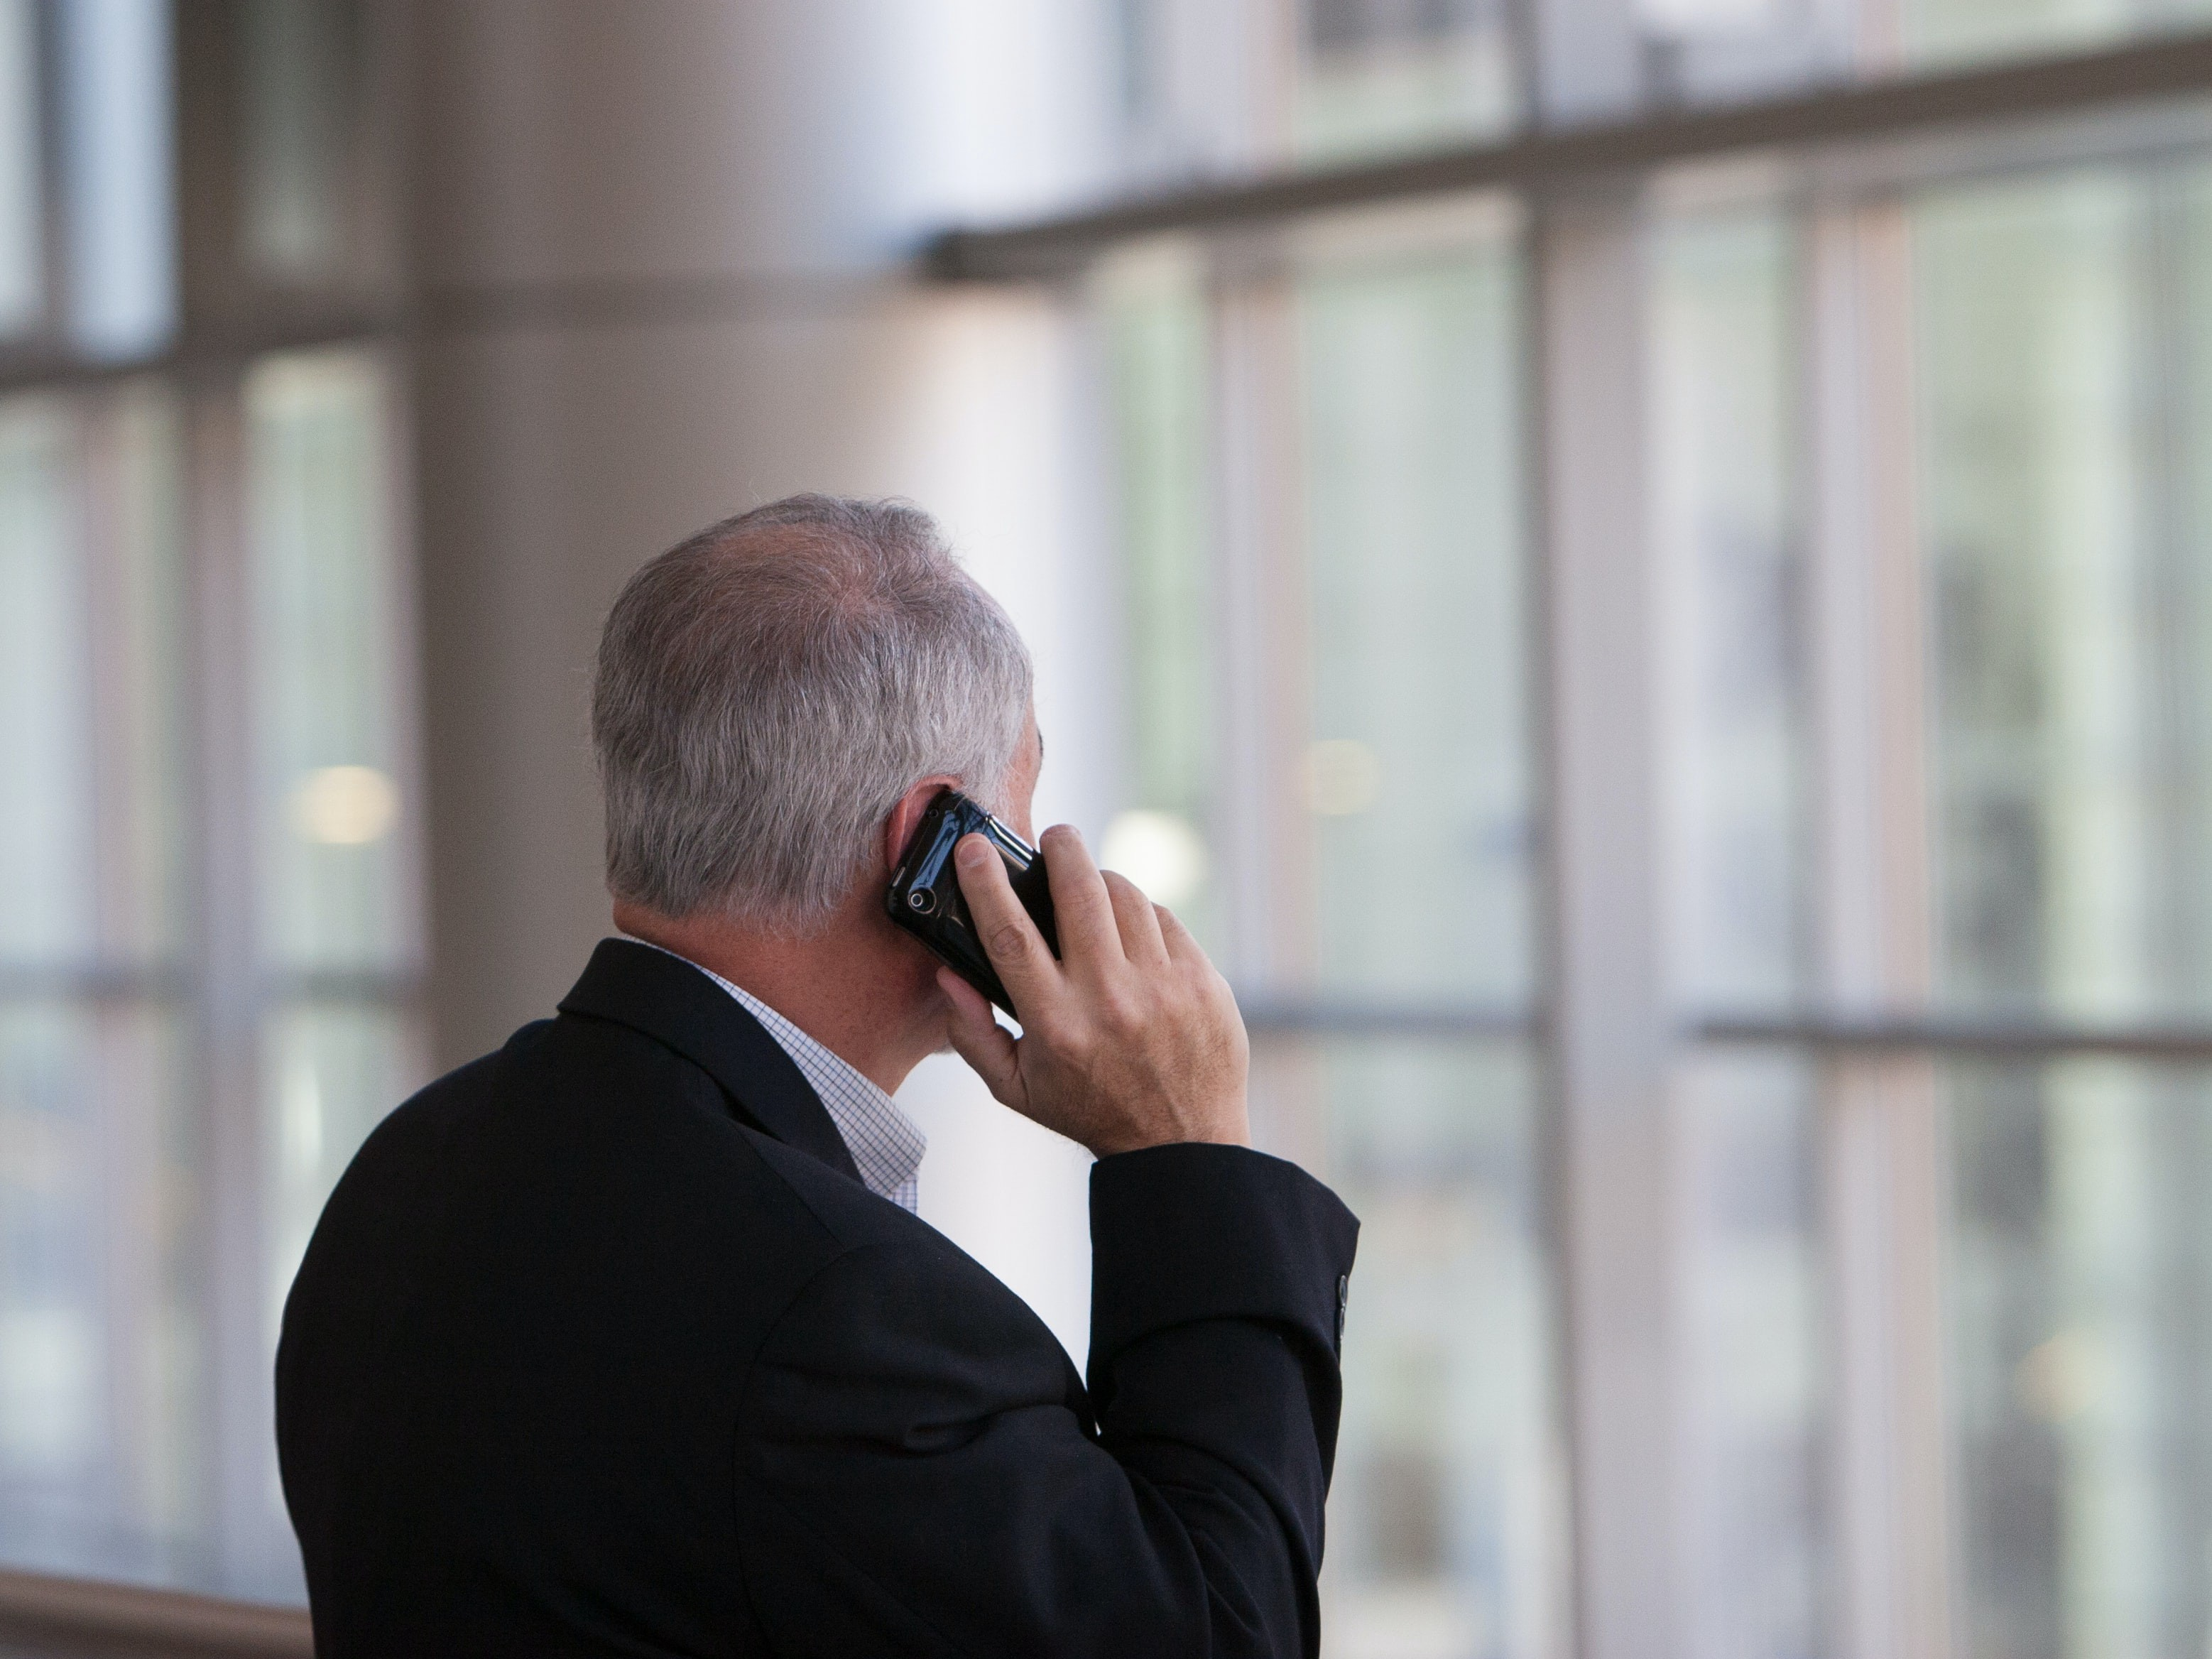 A grey-haired man in a suit talks on telephone.